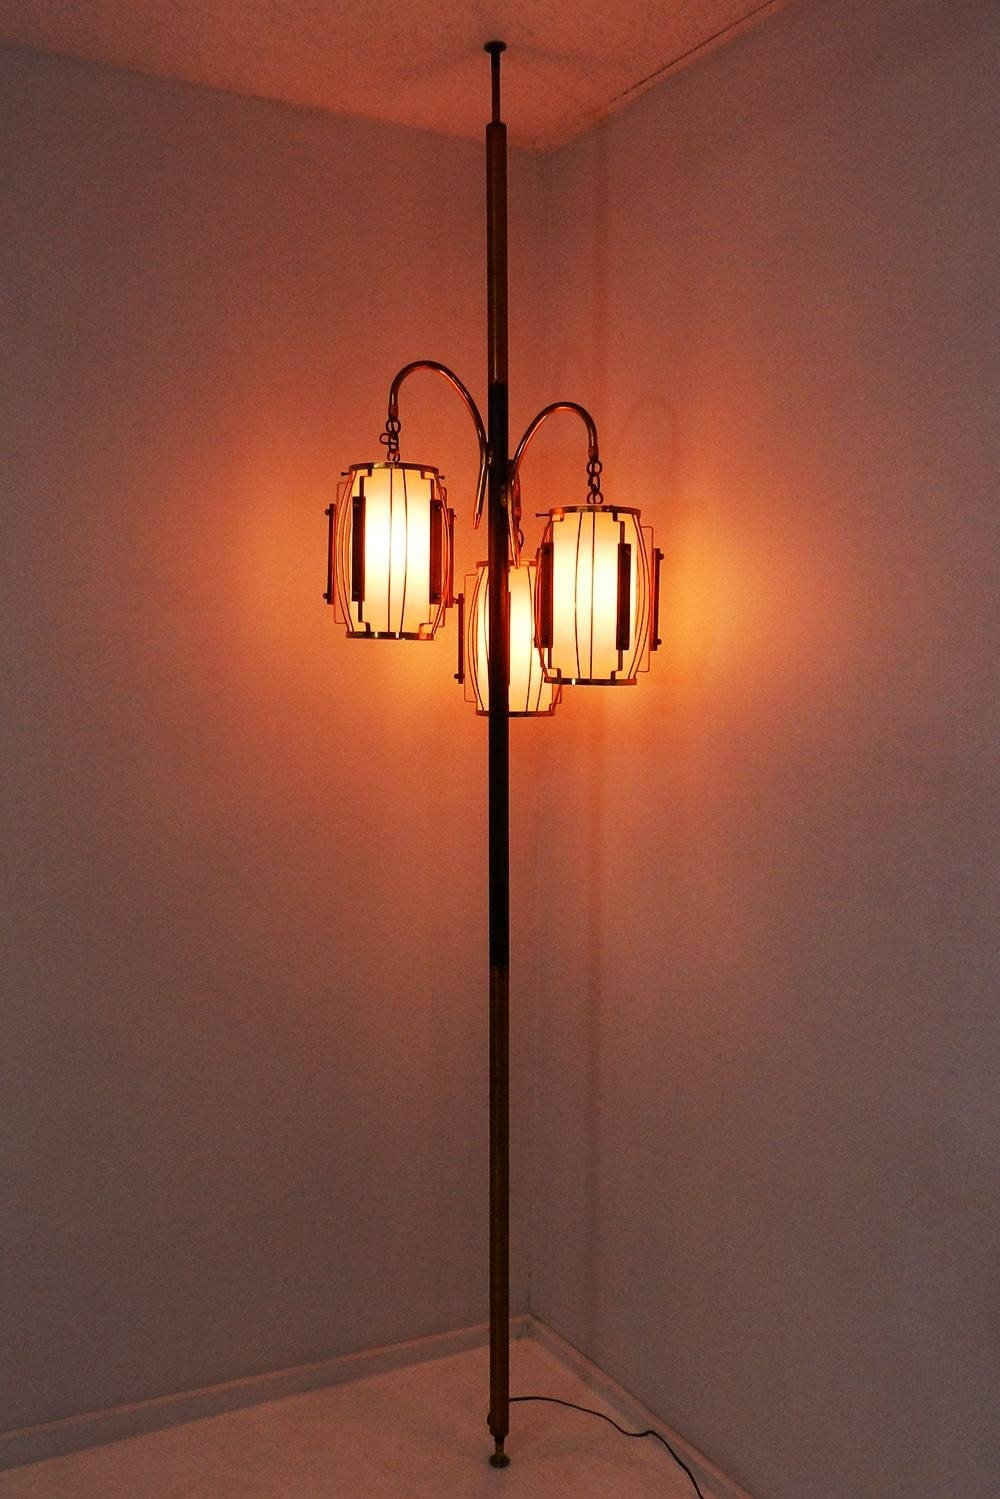 Floor To Ceiling Tension Pole Lamp